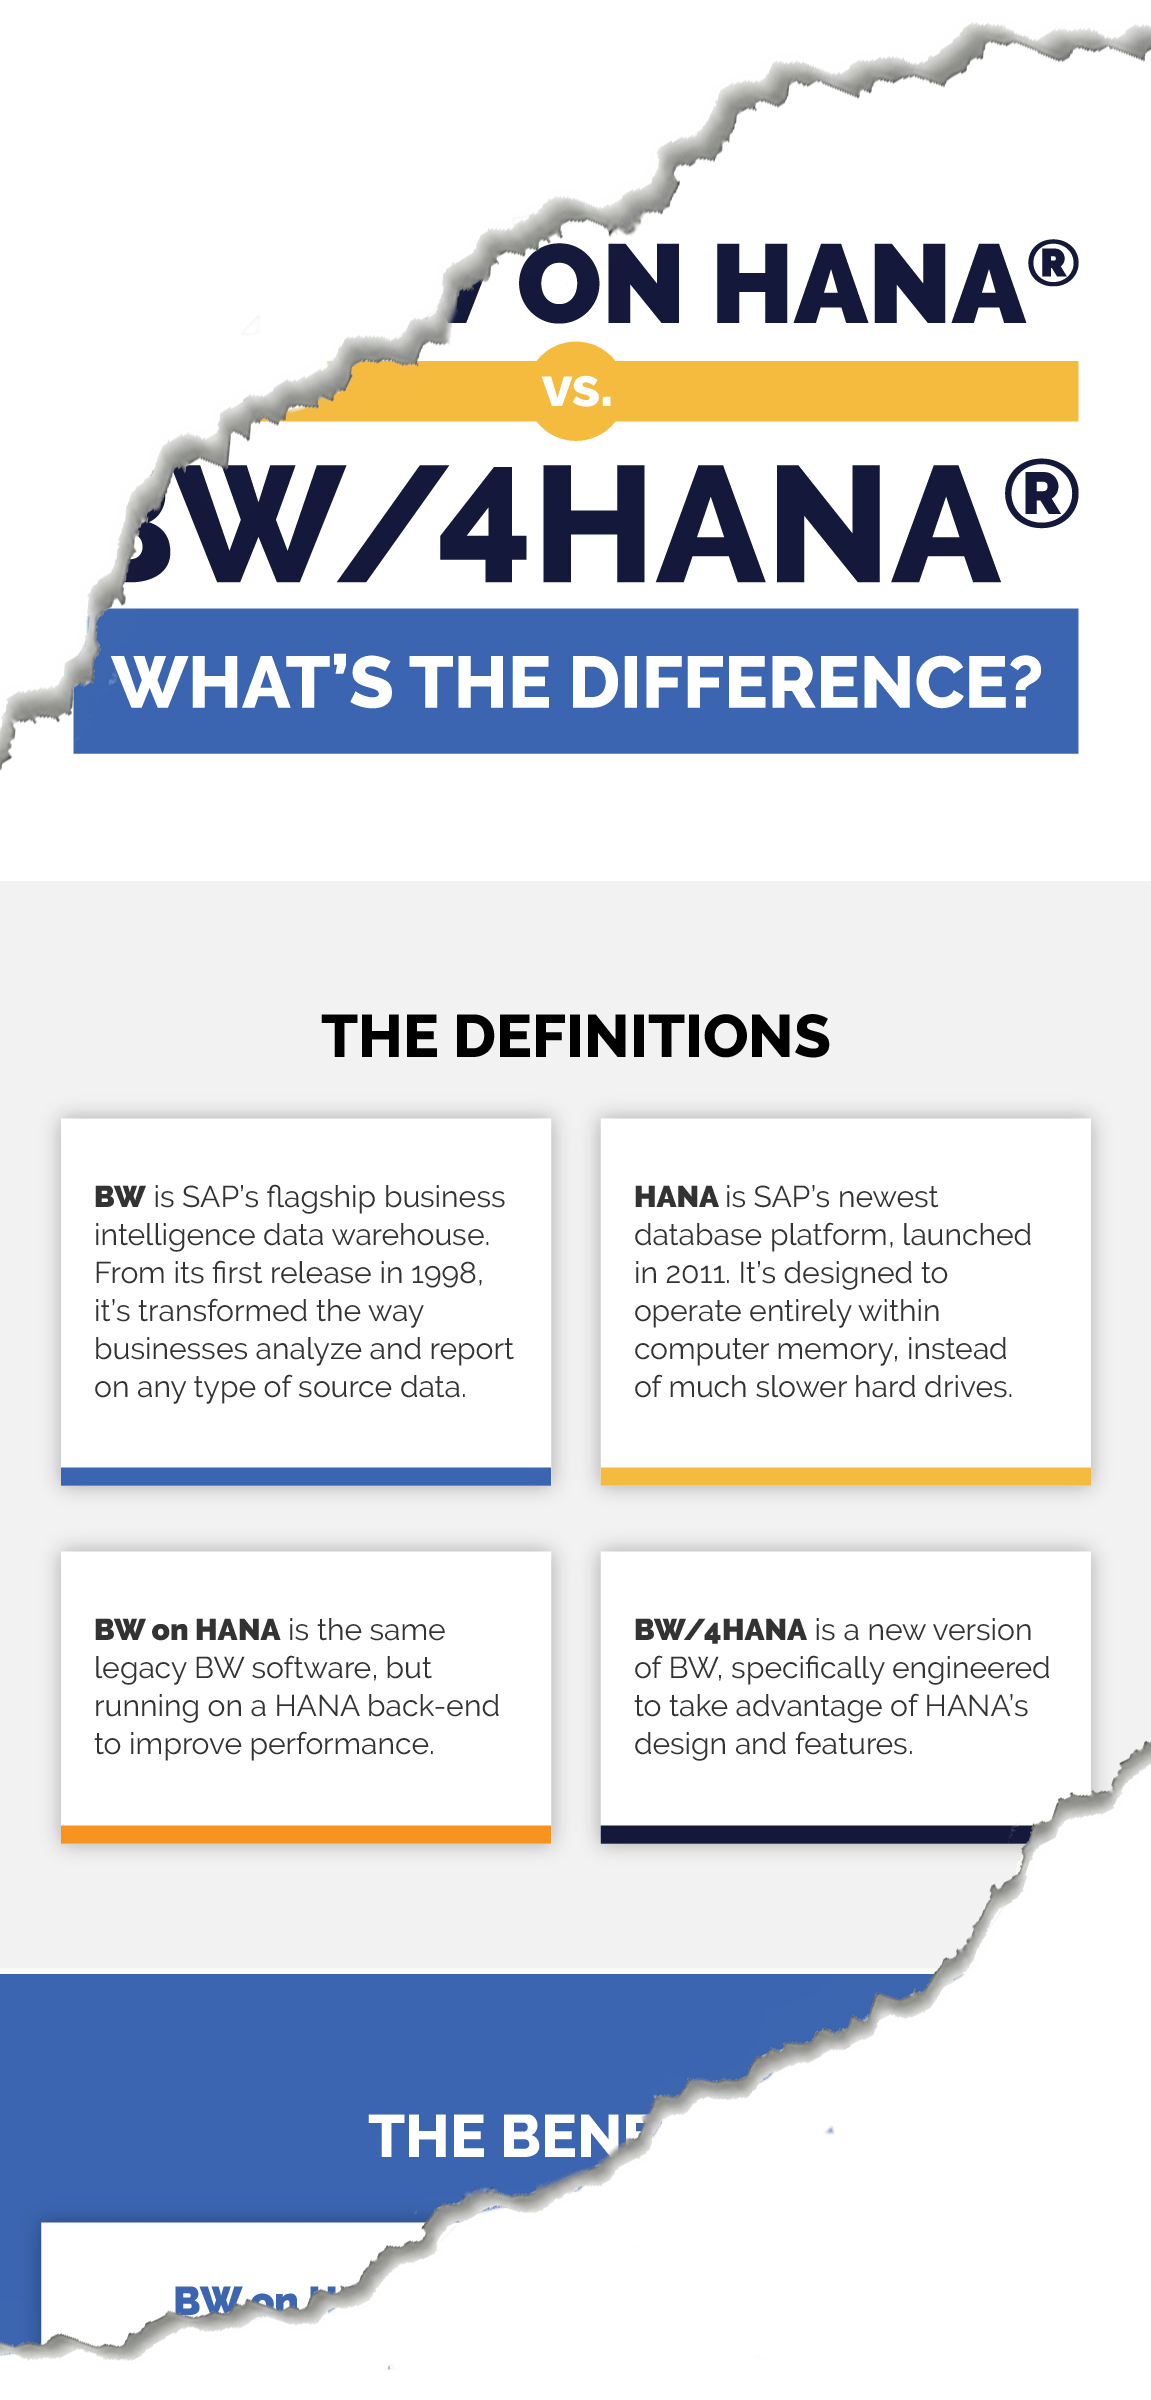 SAP BW on HANA vs SAP BW/4HANA: What's the difference